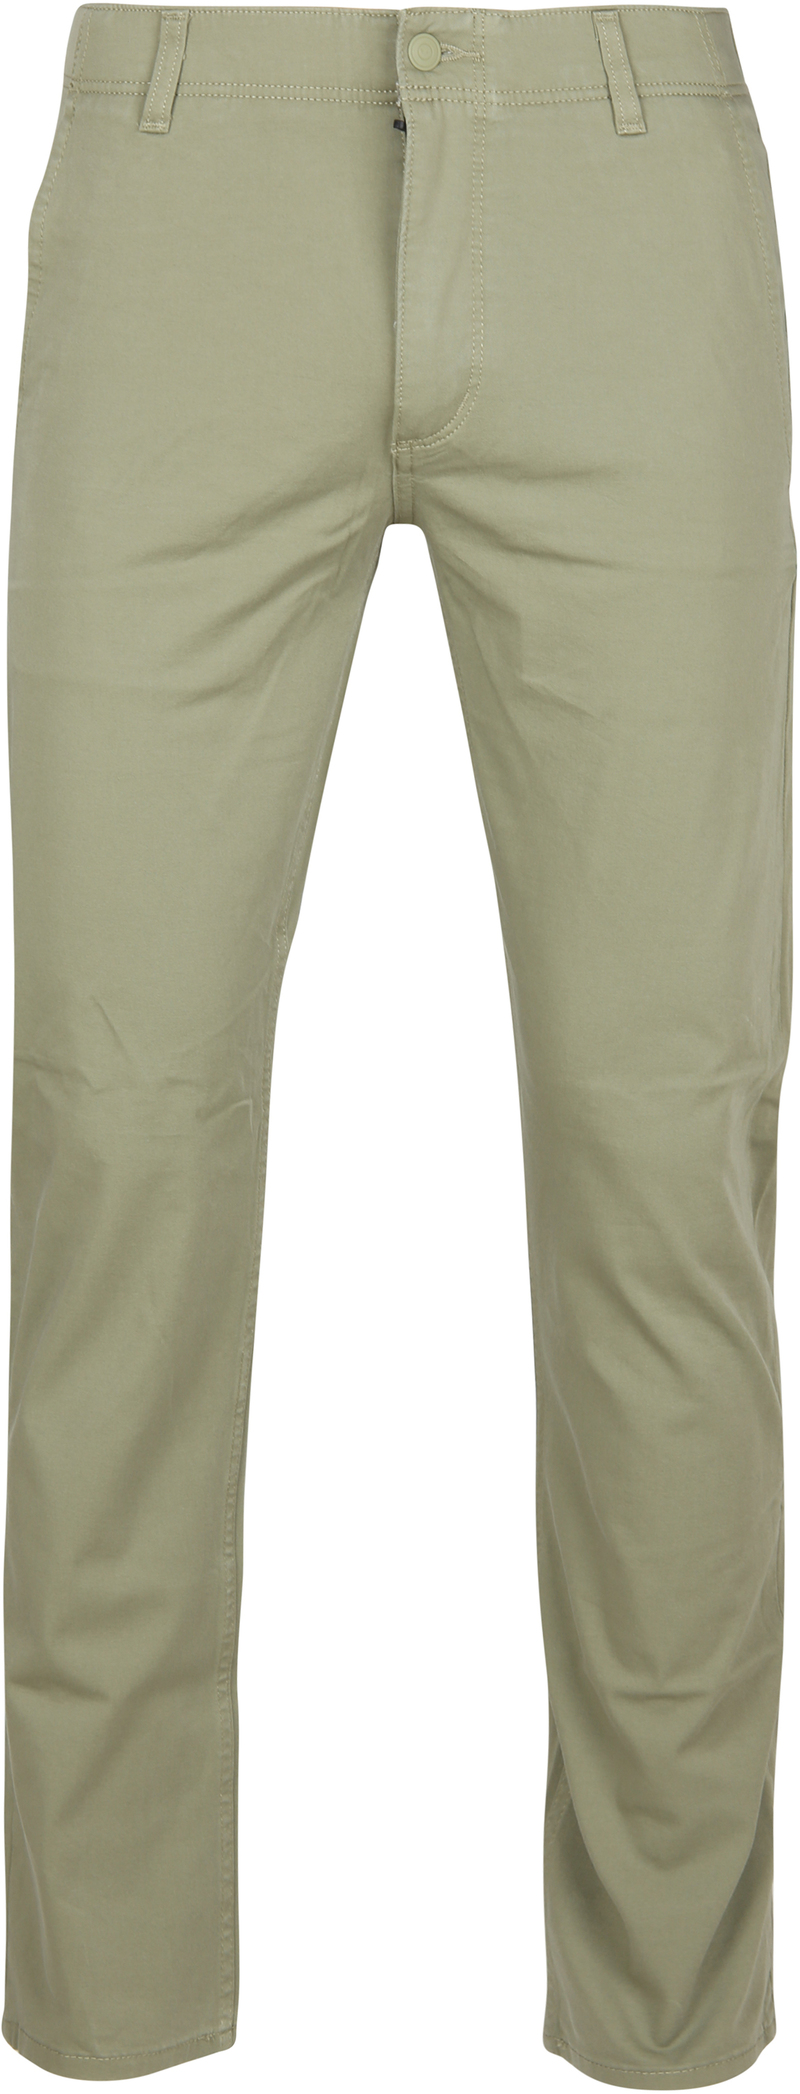 Dockers Alpha Tapered Chino 360 Flex Groen foto 0